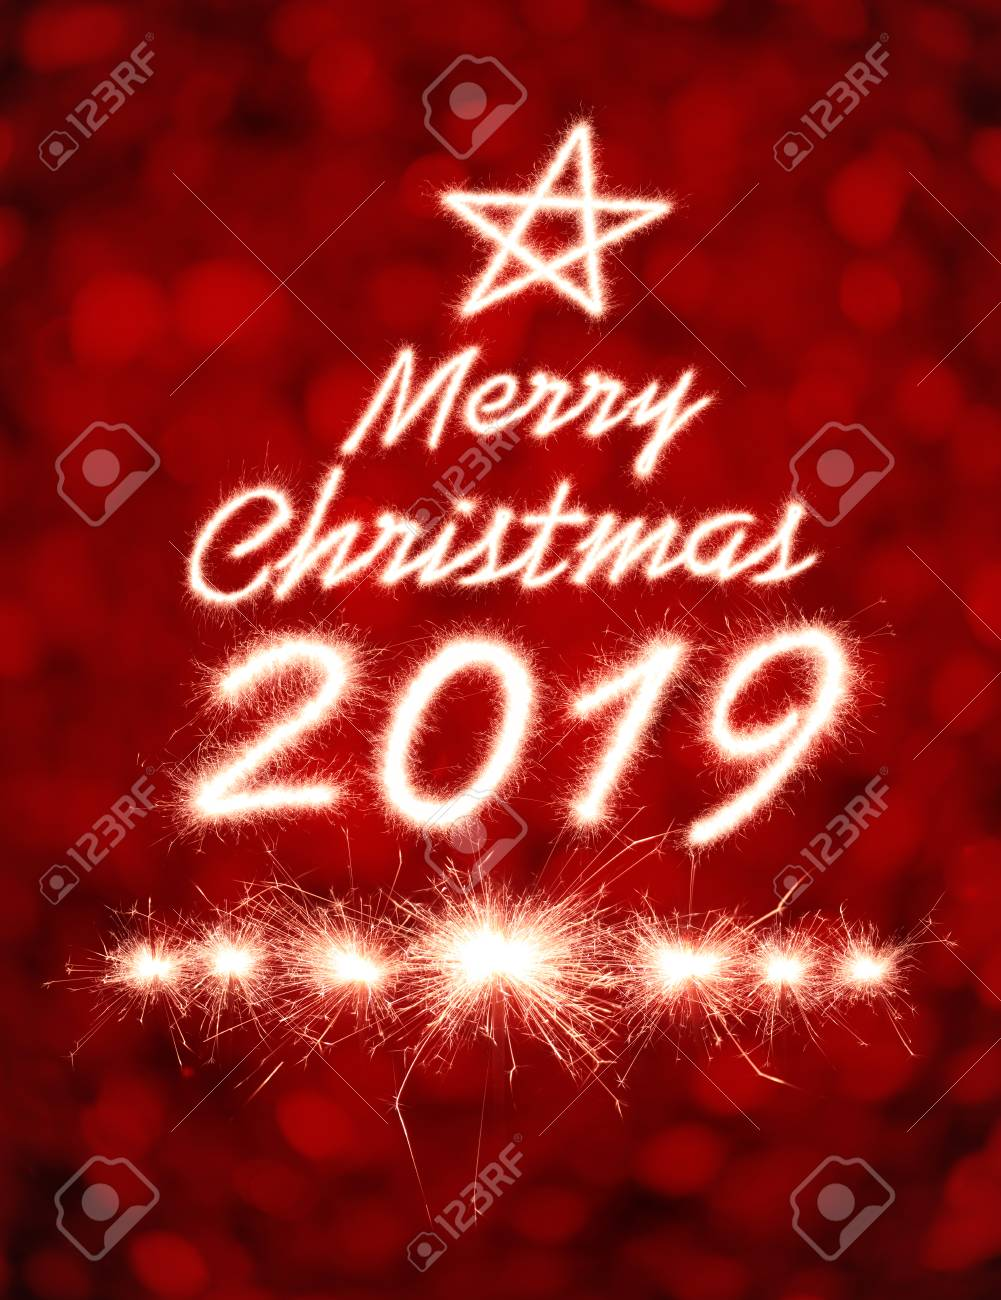 Merry Christmas 2019.Merry Christmas 2019 Written With Sparkle Firework Over Bokeh